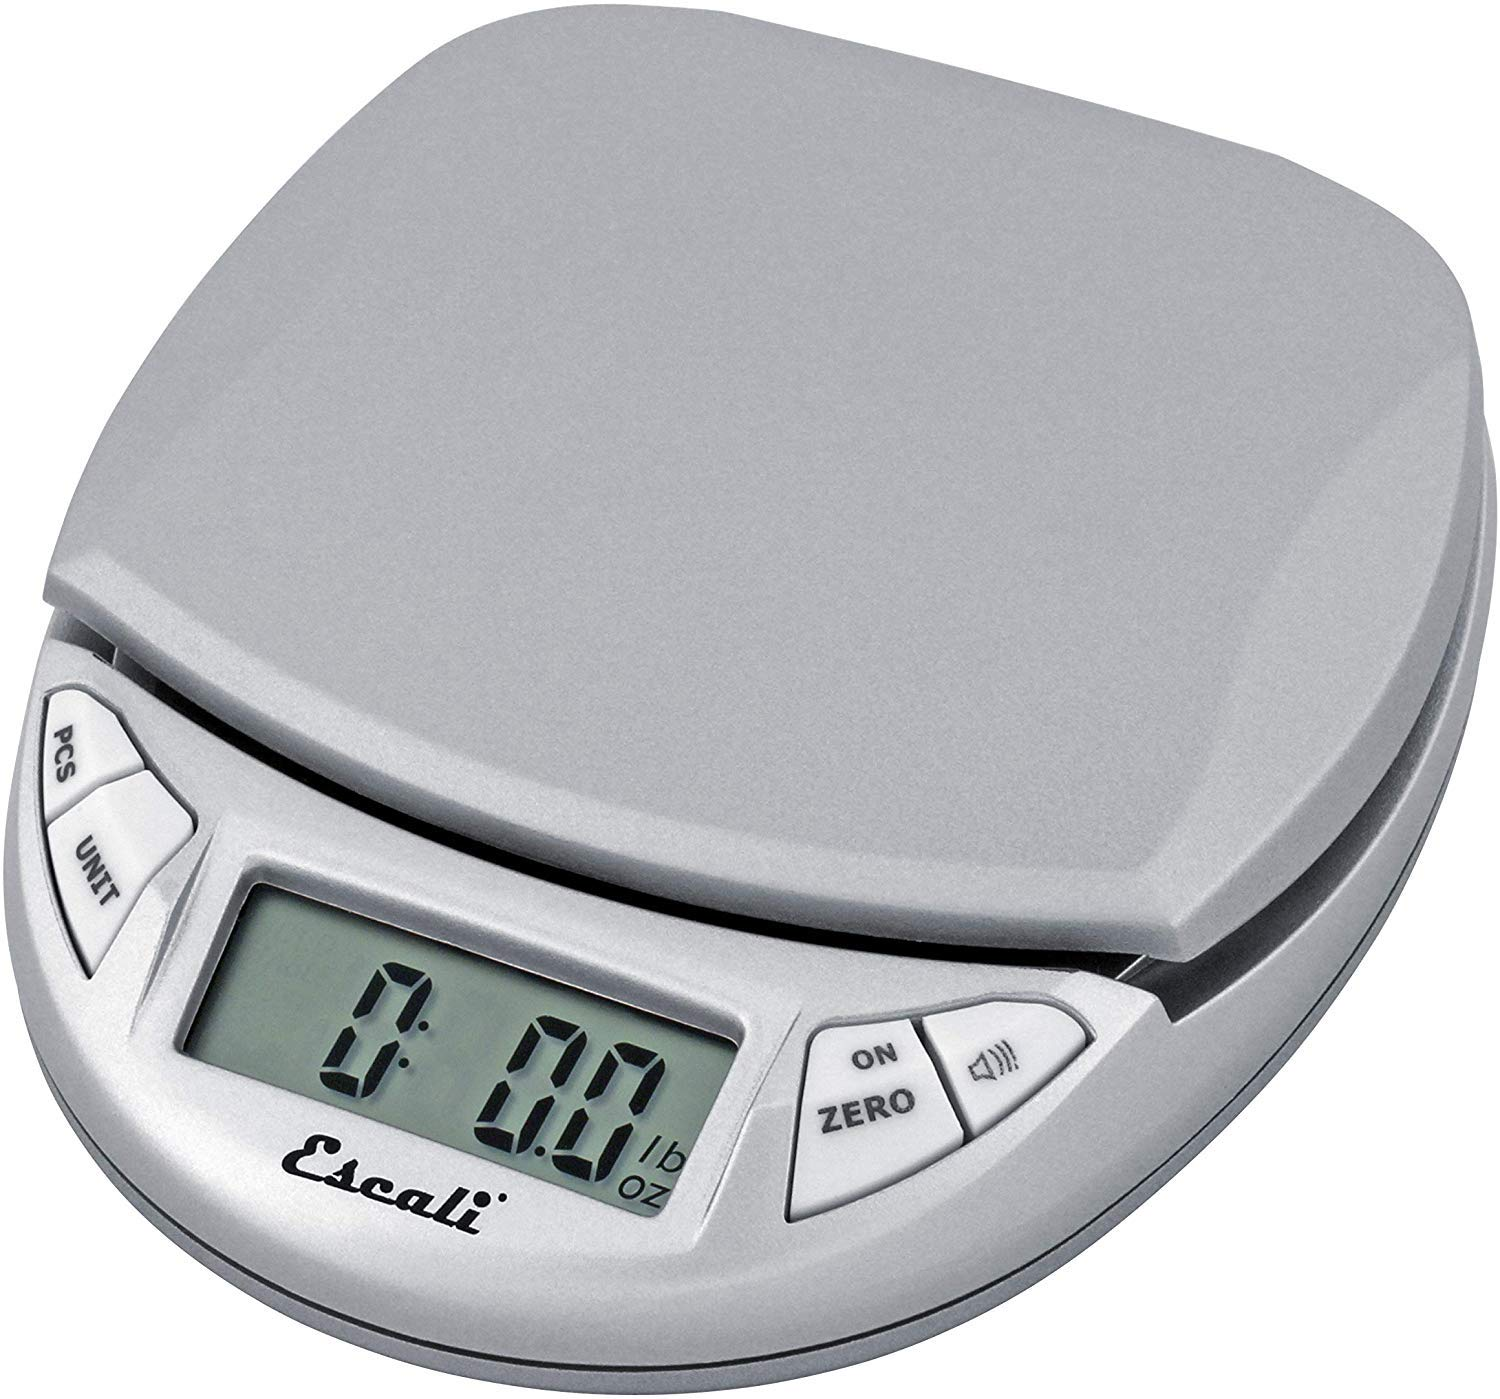 Escali Pico N115S Kitchen, Office Scale, Tare Functionality, Compact Design, LCD Digital Display, 11lb Capacity, Silver/Grey